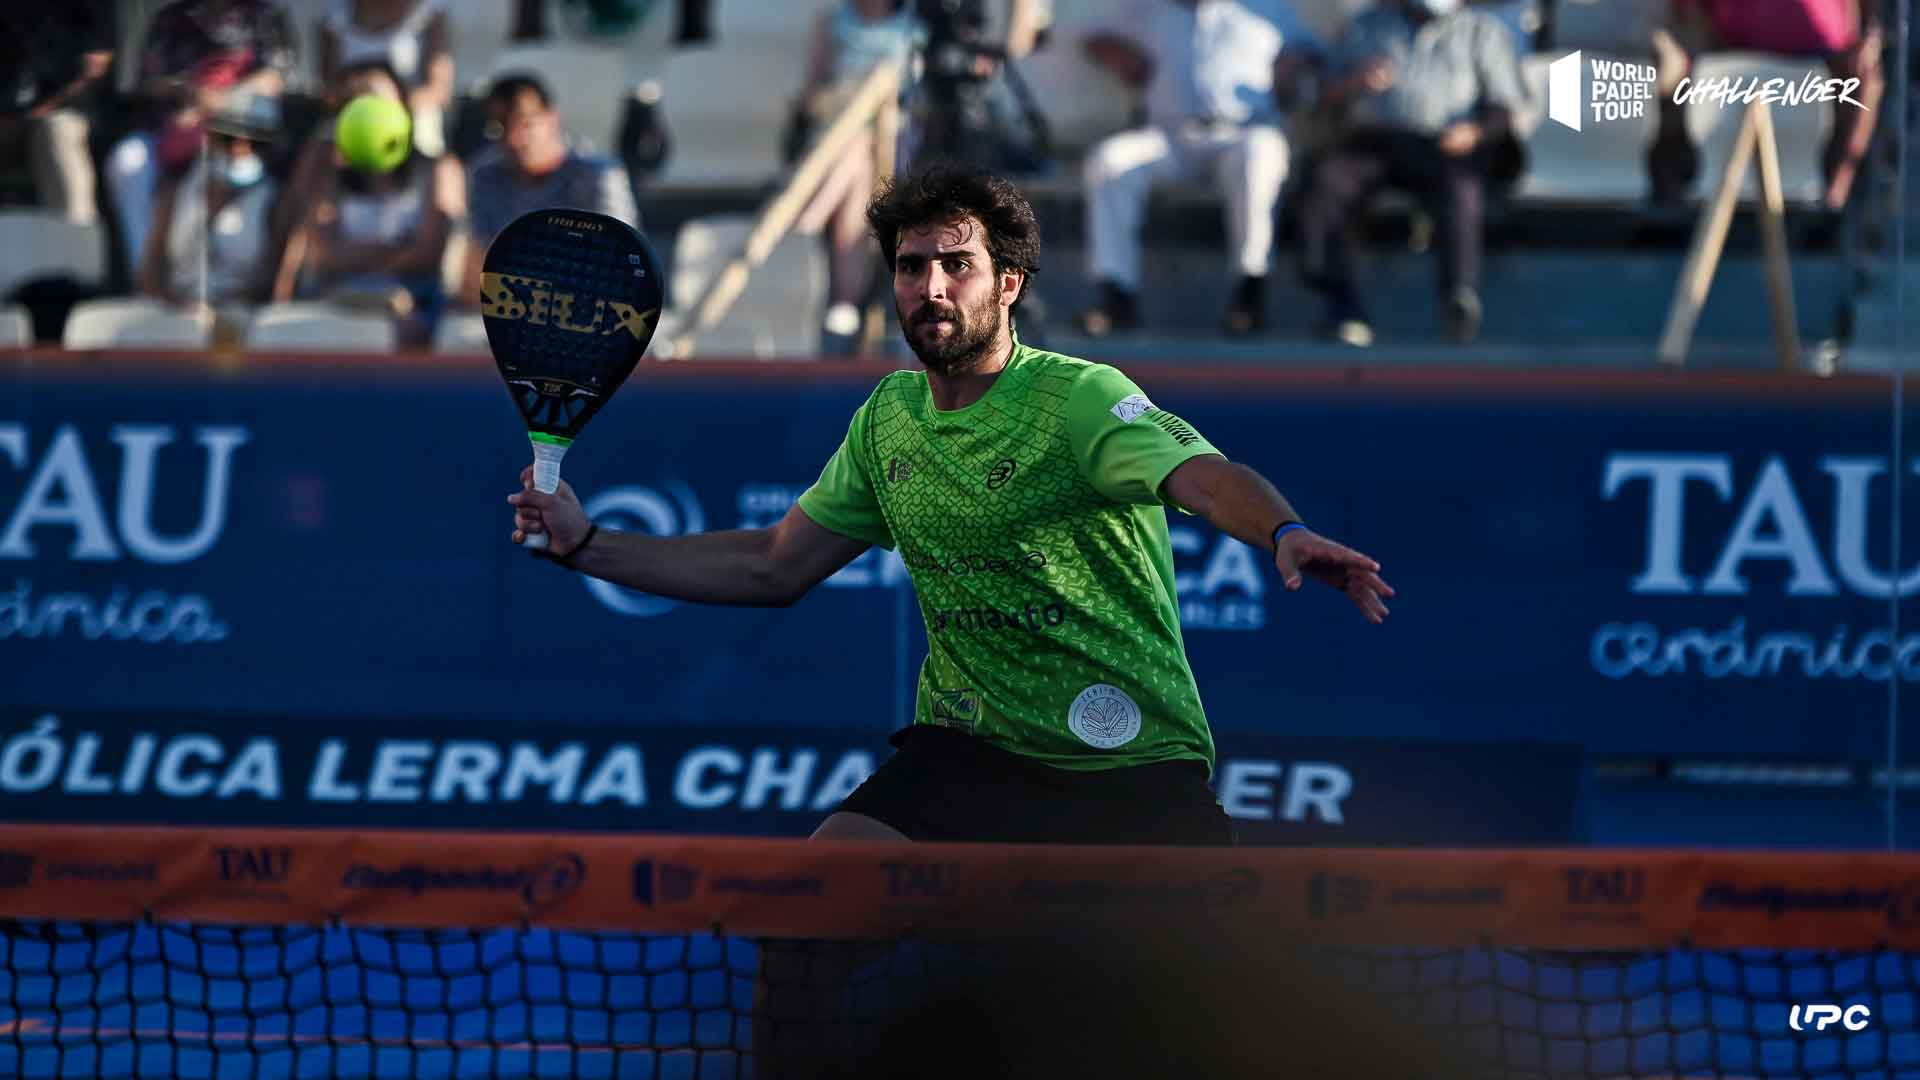 TEO_ZAPATA_8os_final_masculinos_ibereolica_challenger_taucerámica